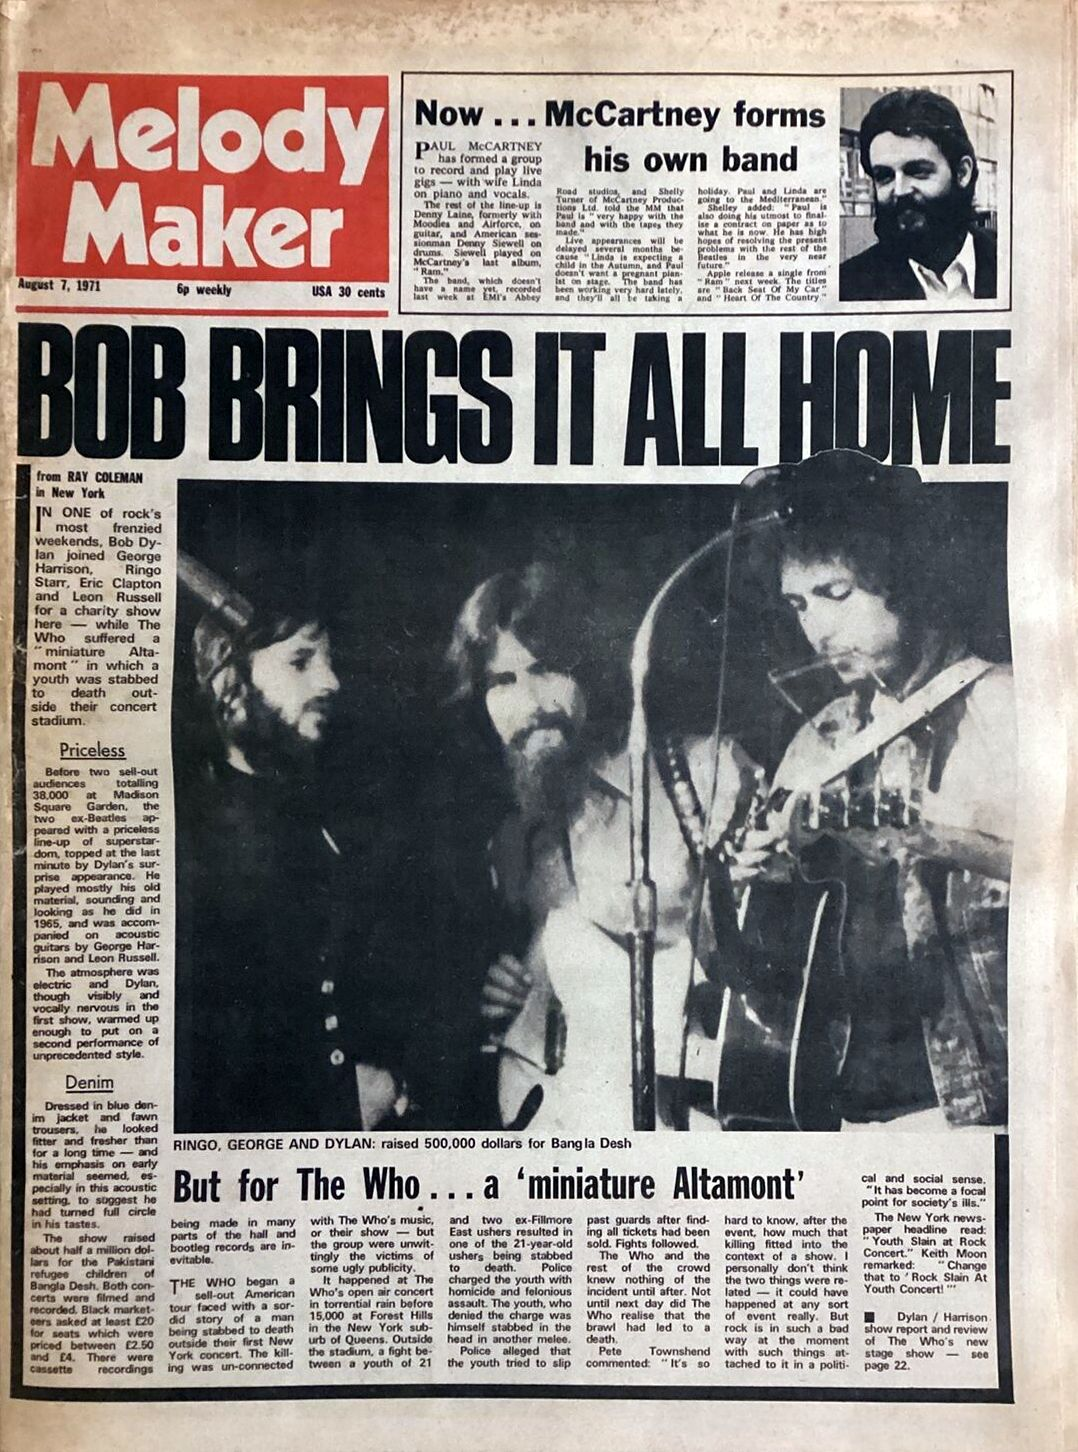 Melody Maker 7 August 1971 Bob Dylan cover story